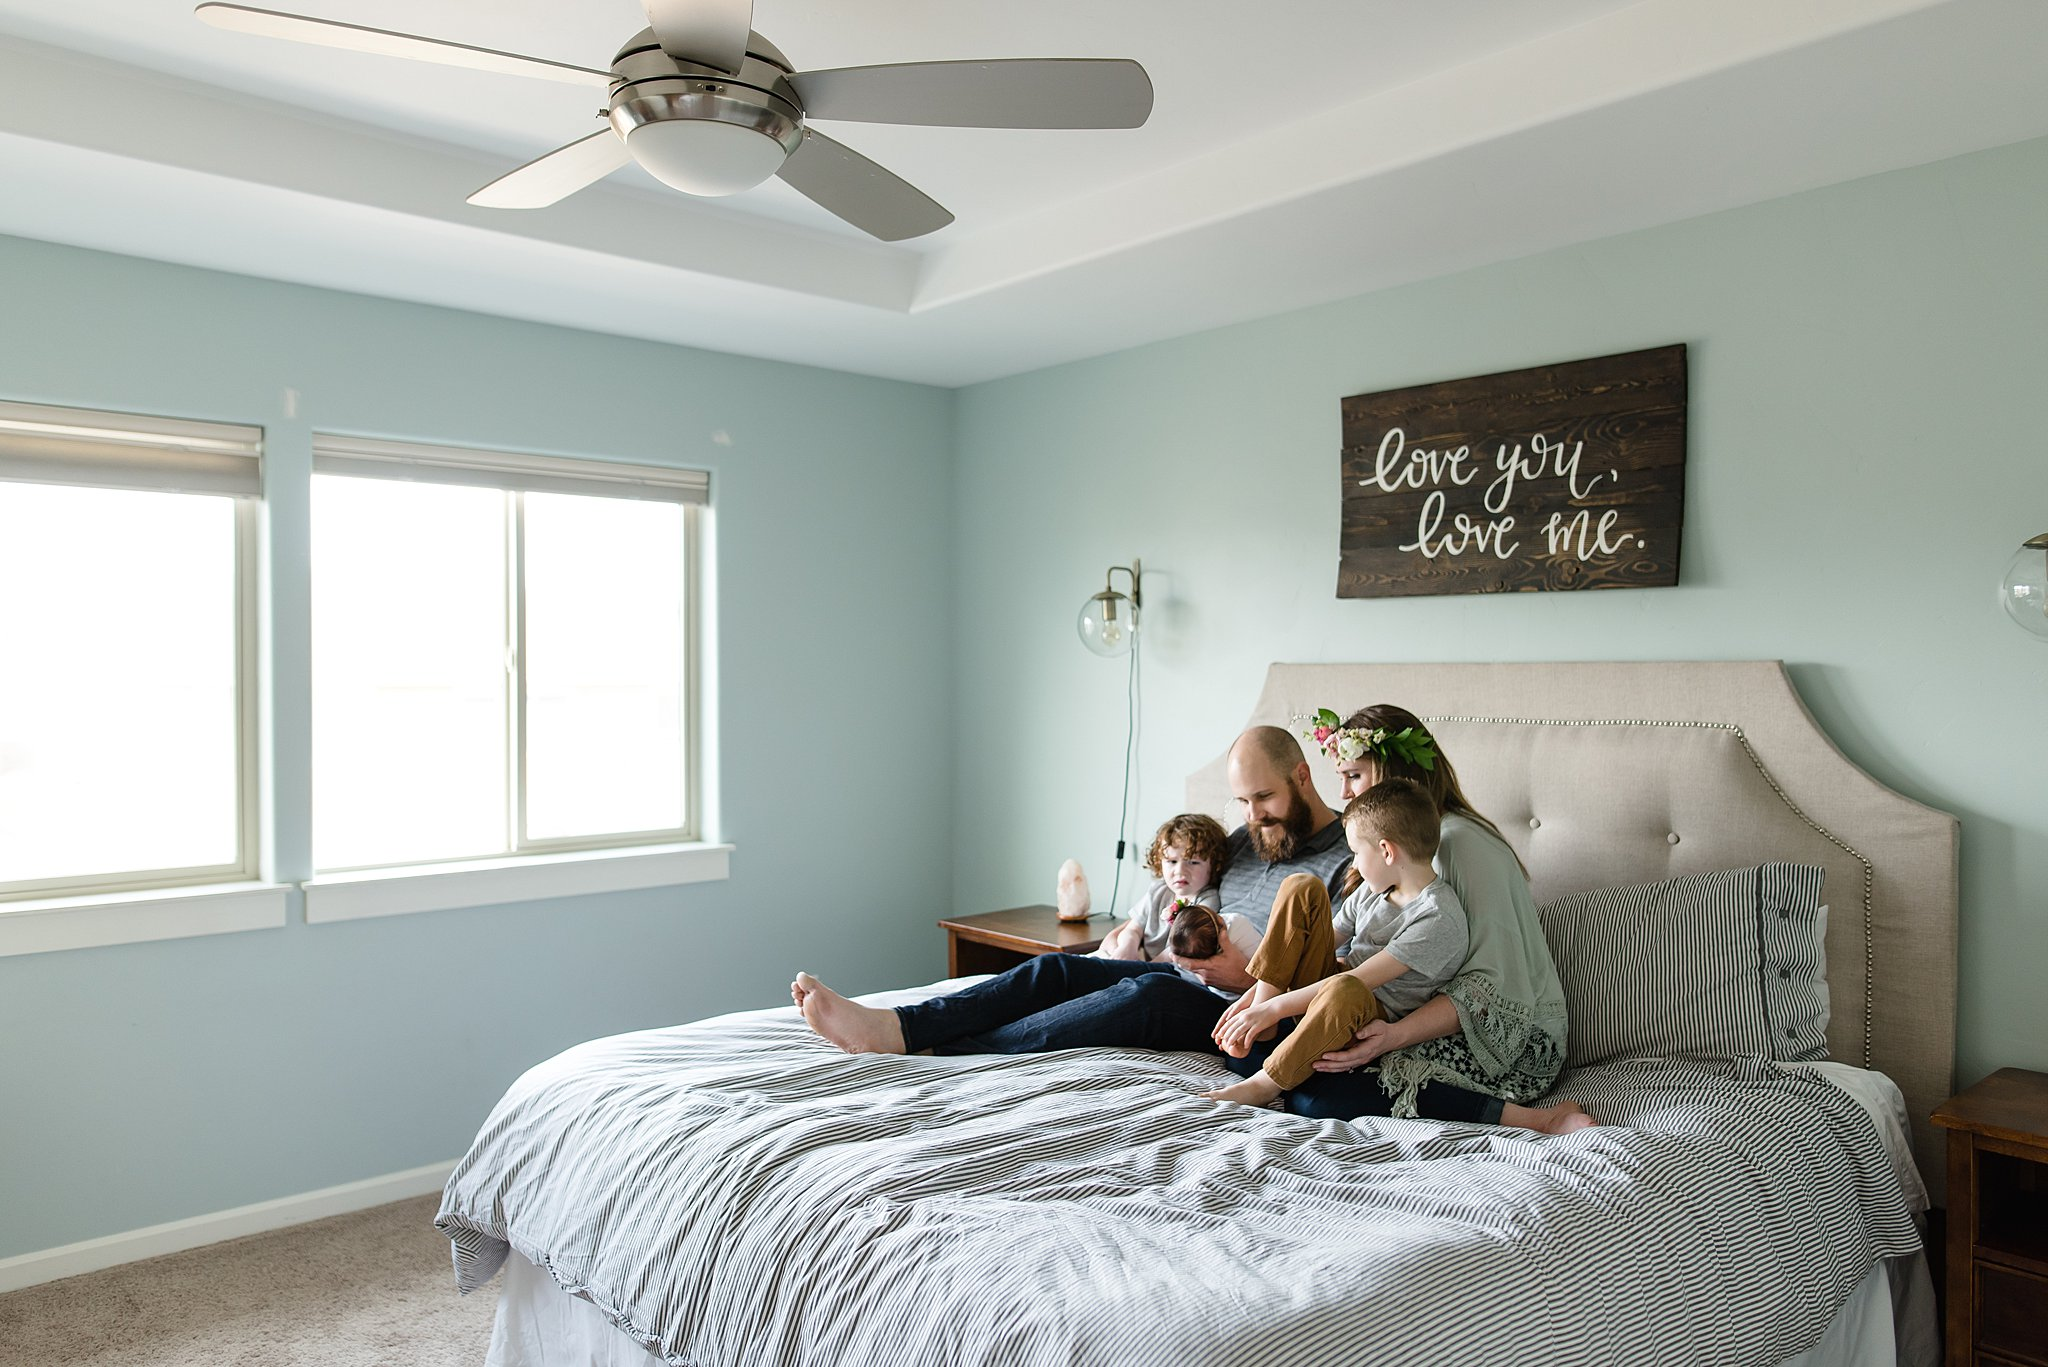 a peek through the doorway of a family snuggling together on the bed.